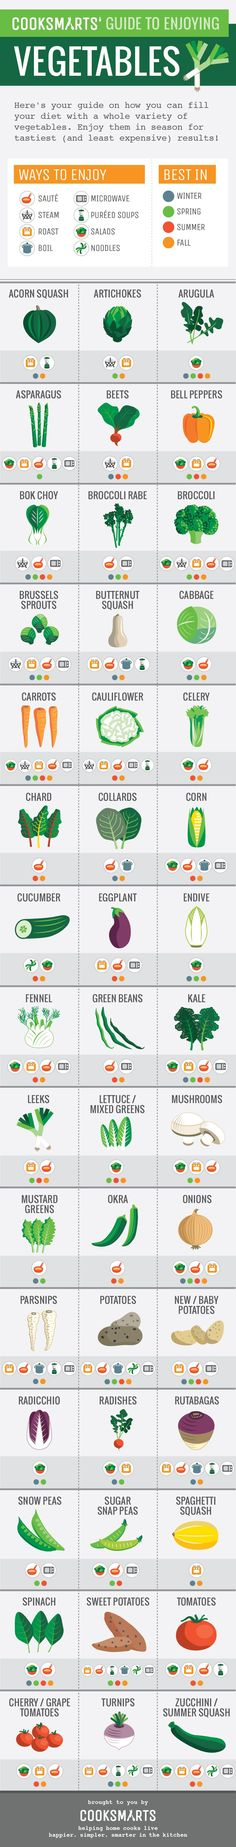 Cook Smarts cooking formula guide to enjoying vegetables.